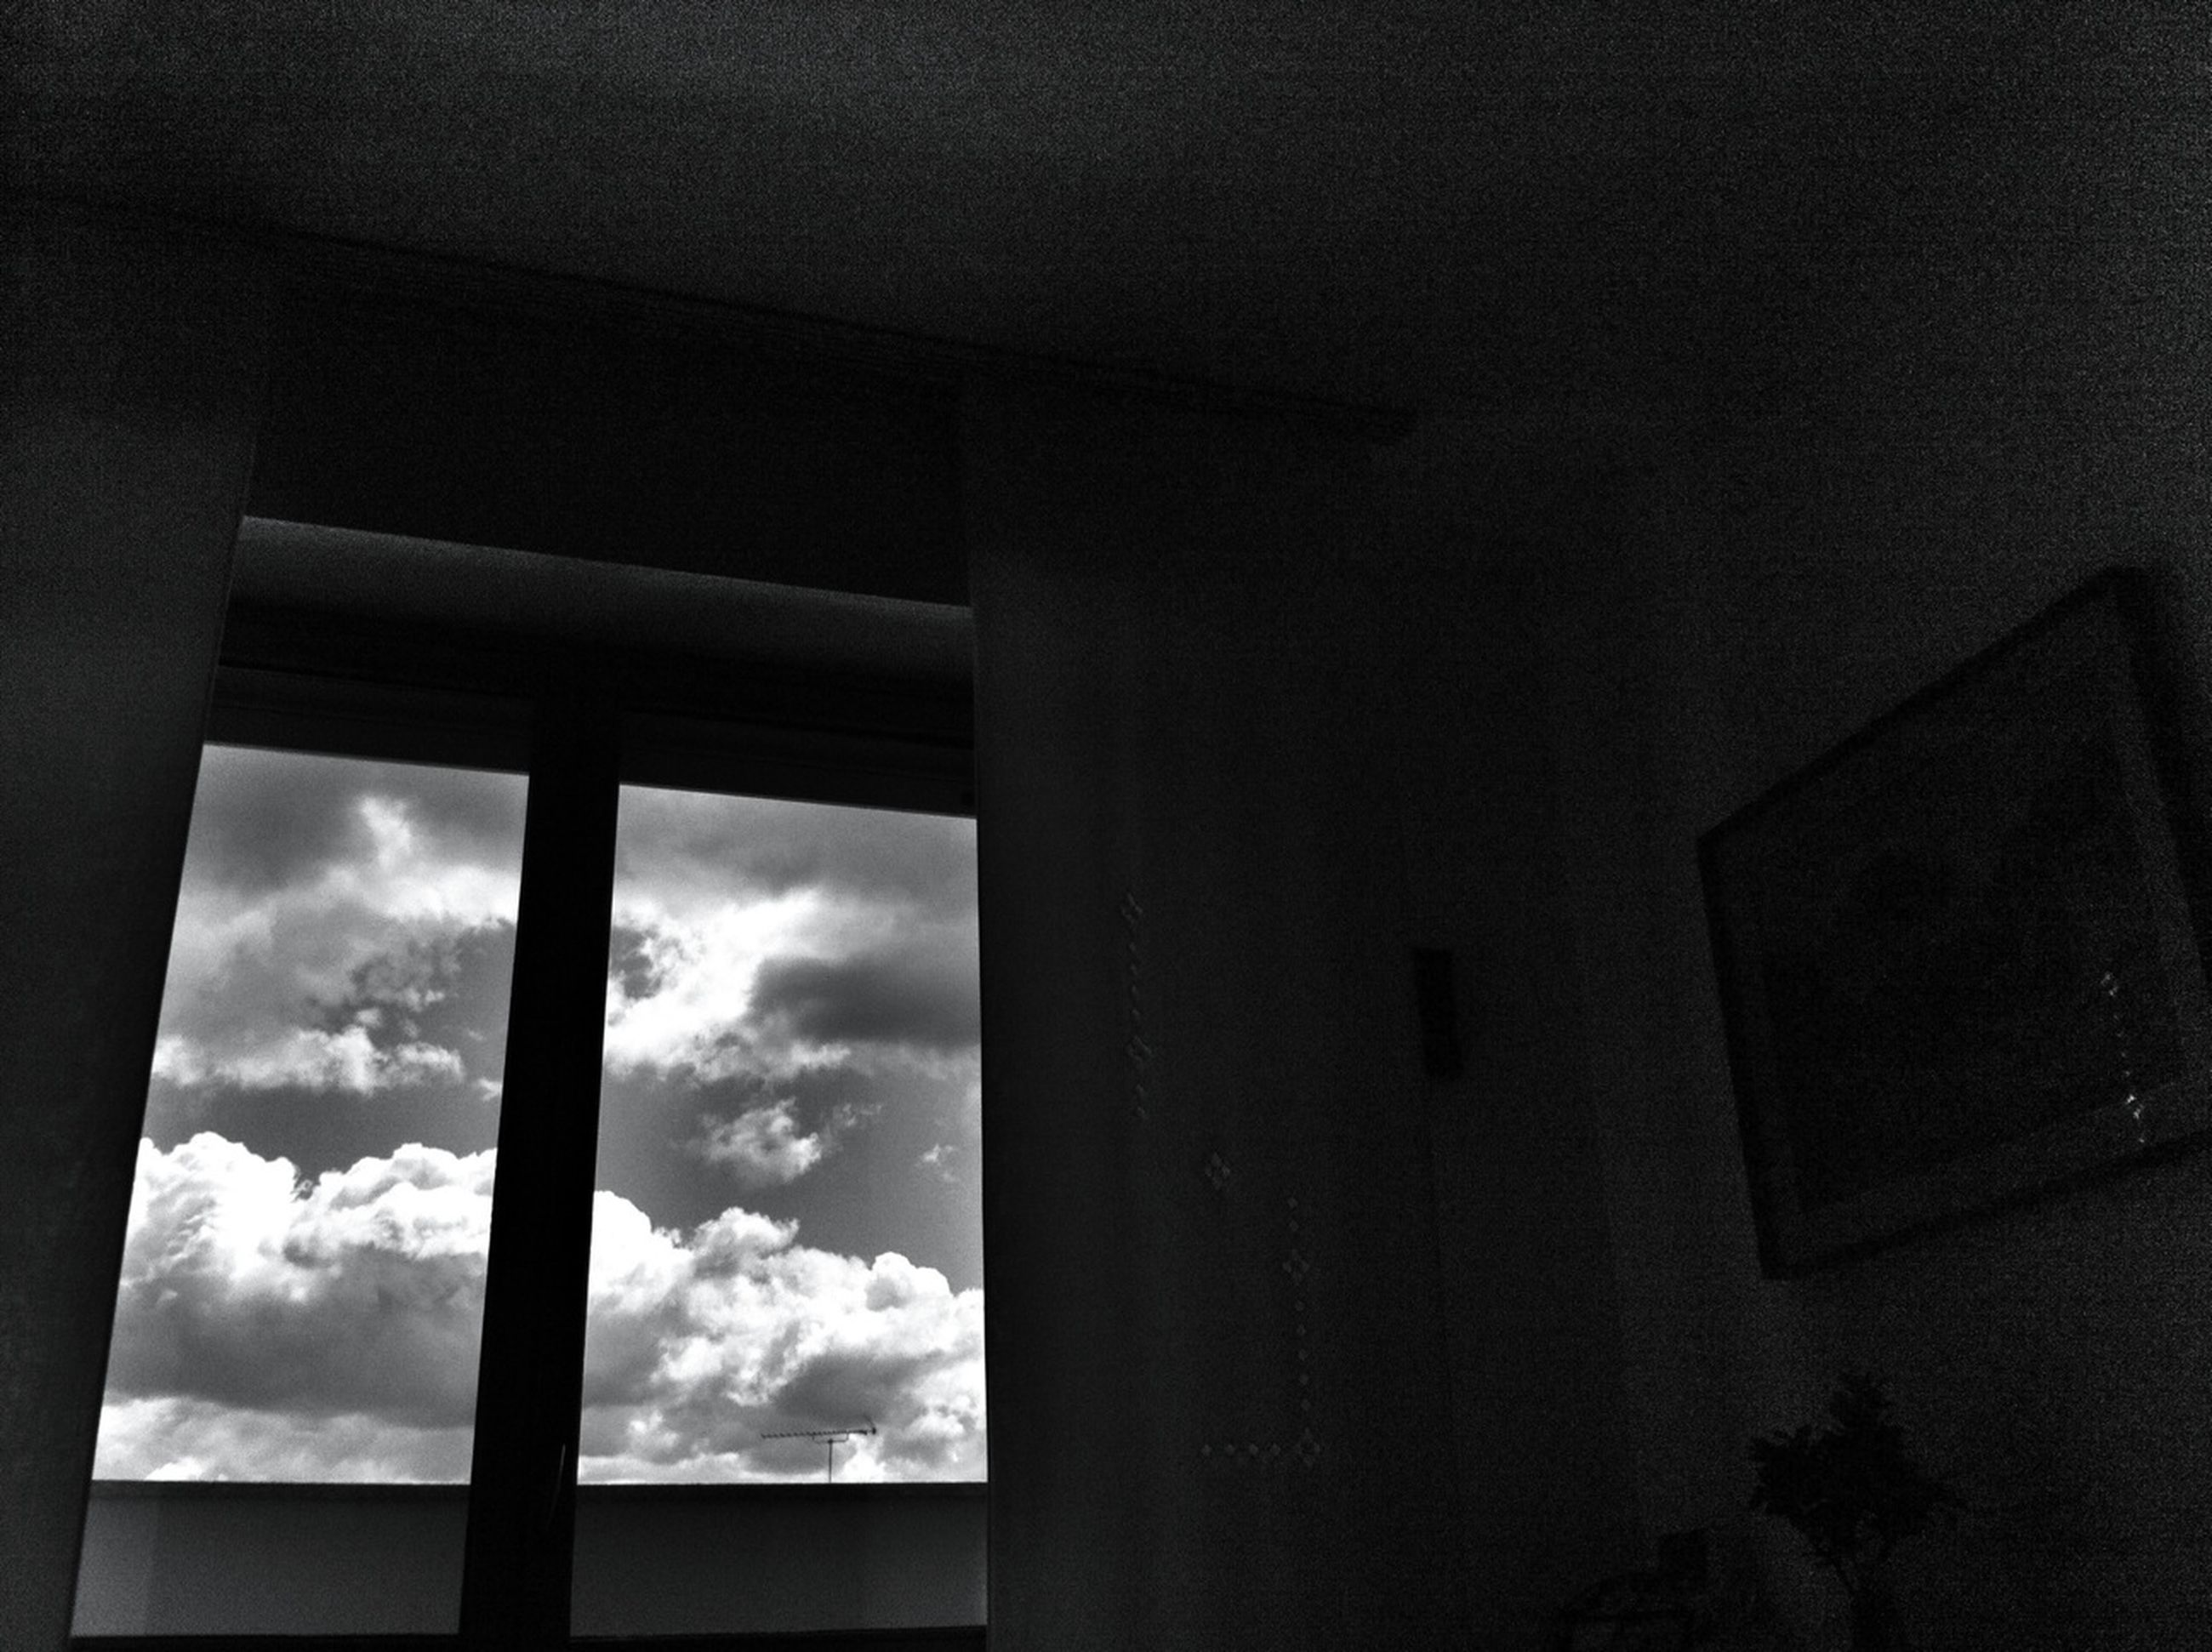 architecture, built structure, sky, window, low angle view, indoors, cloud - sky, building exterior, cloud, cloudy, day, sunlight, no people, building, silhouette, glass - material, column, architectural column, house